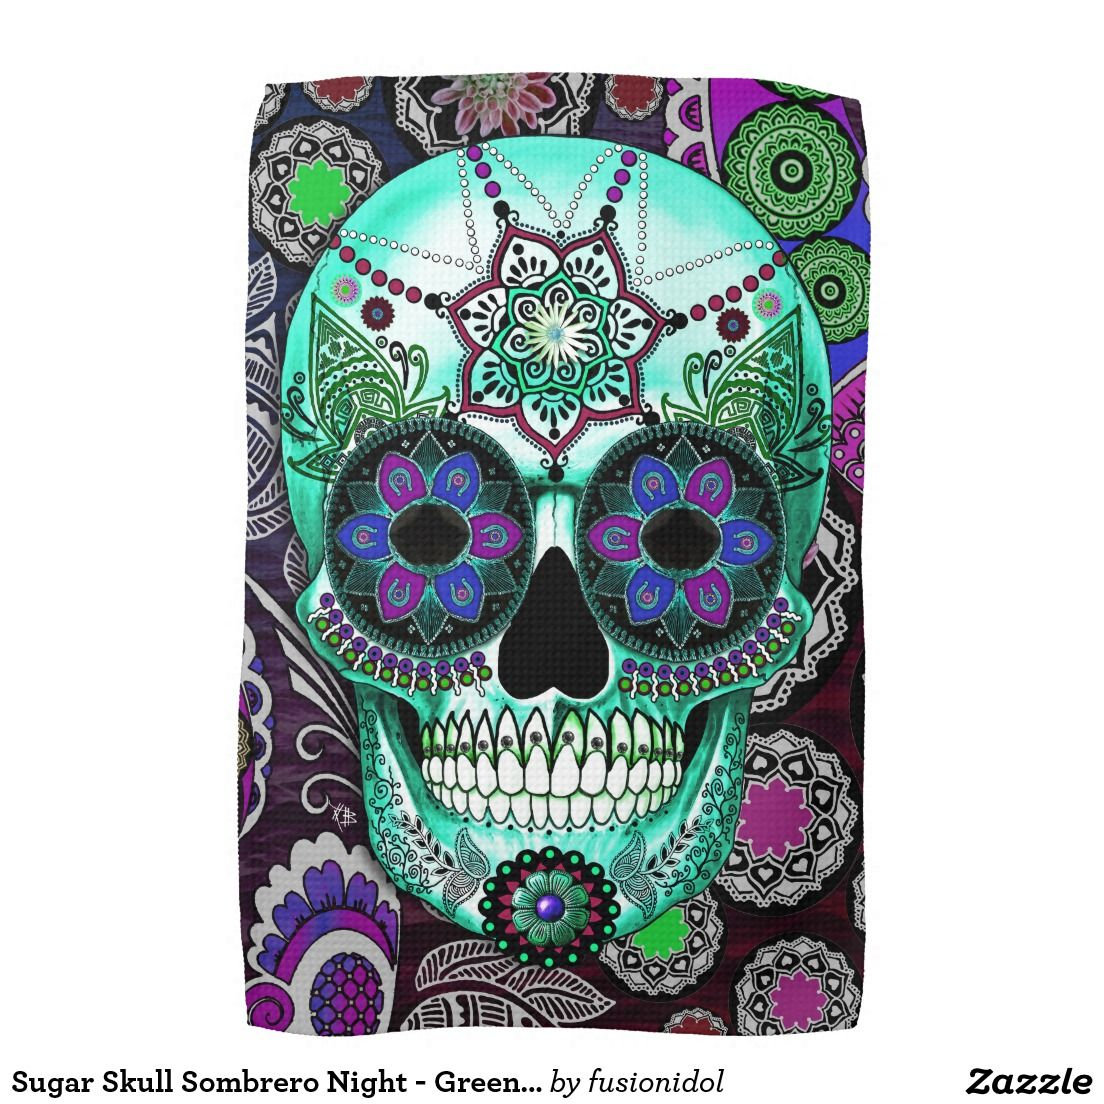 Sugar Skull Sombrero Night - Green | Sugar skull favs | Pinterest ...